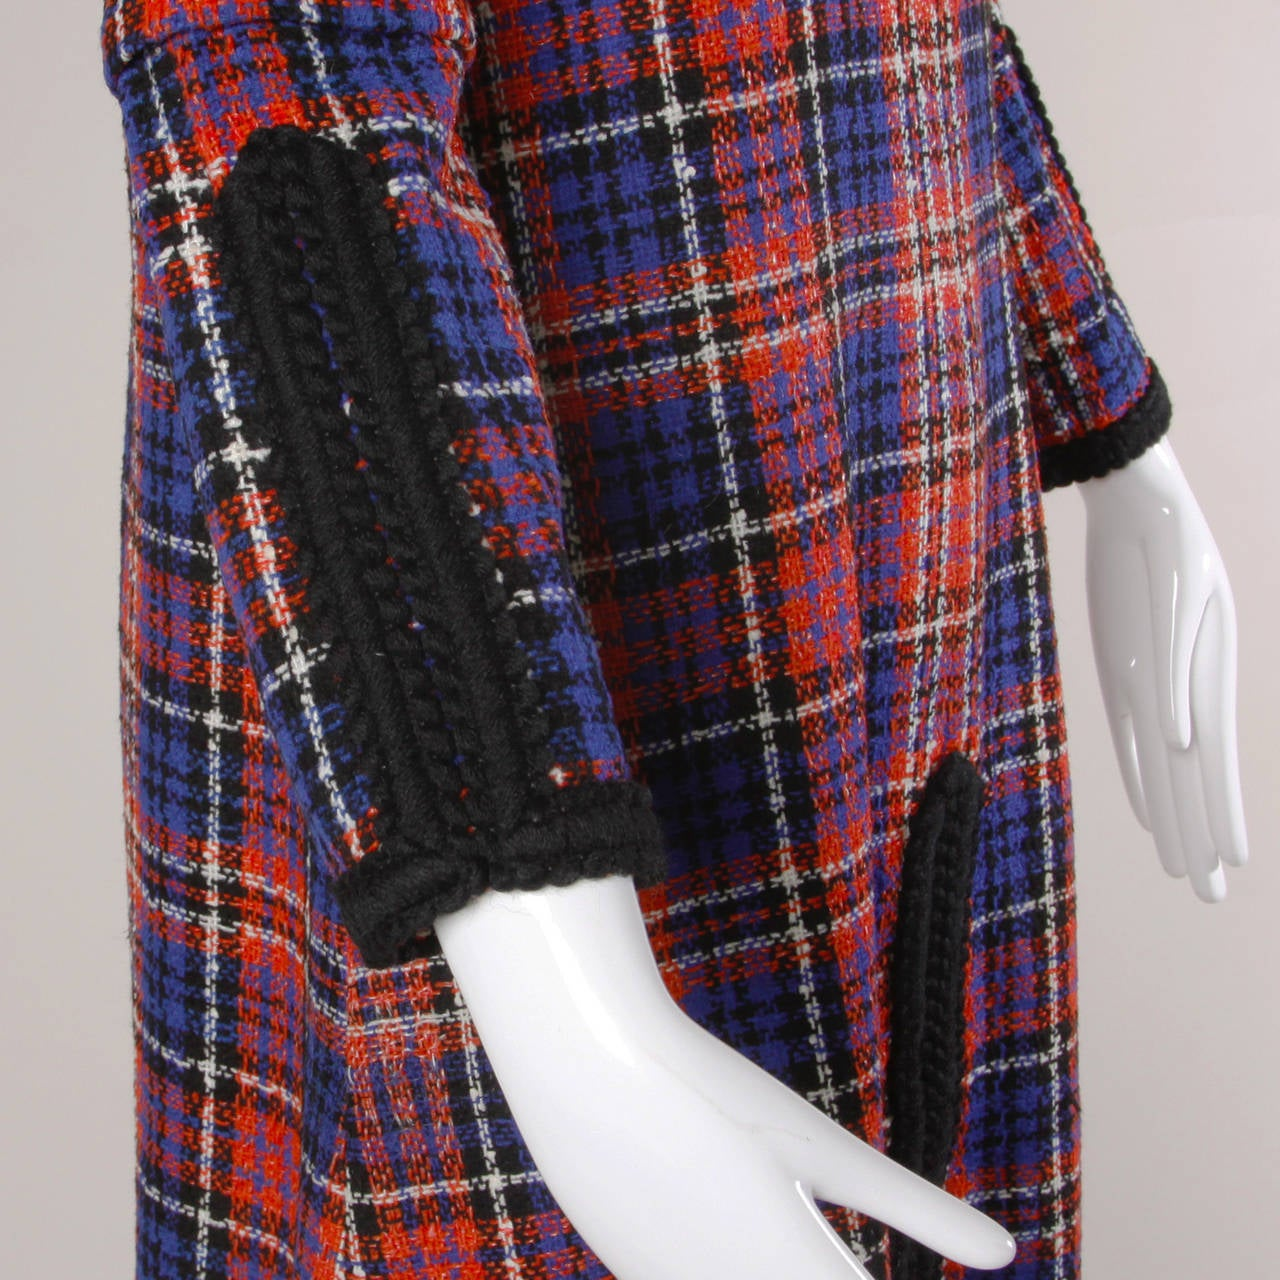 Oscar de la Renta Vintage 1960s Plaid Dress 4